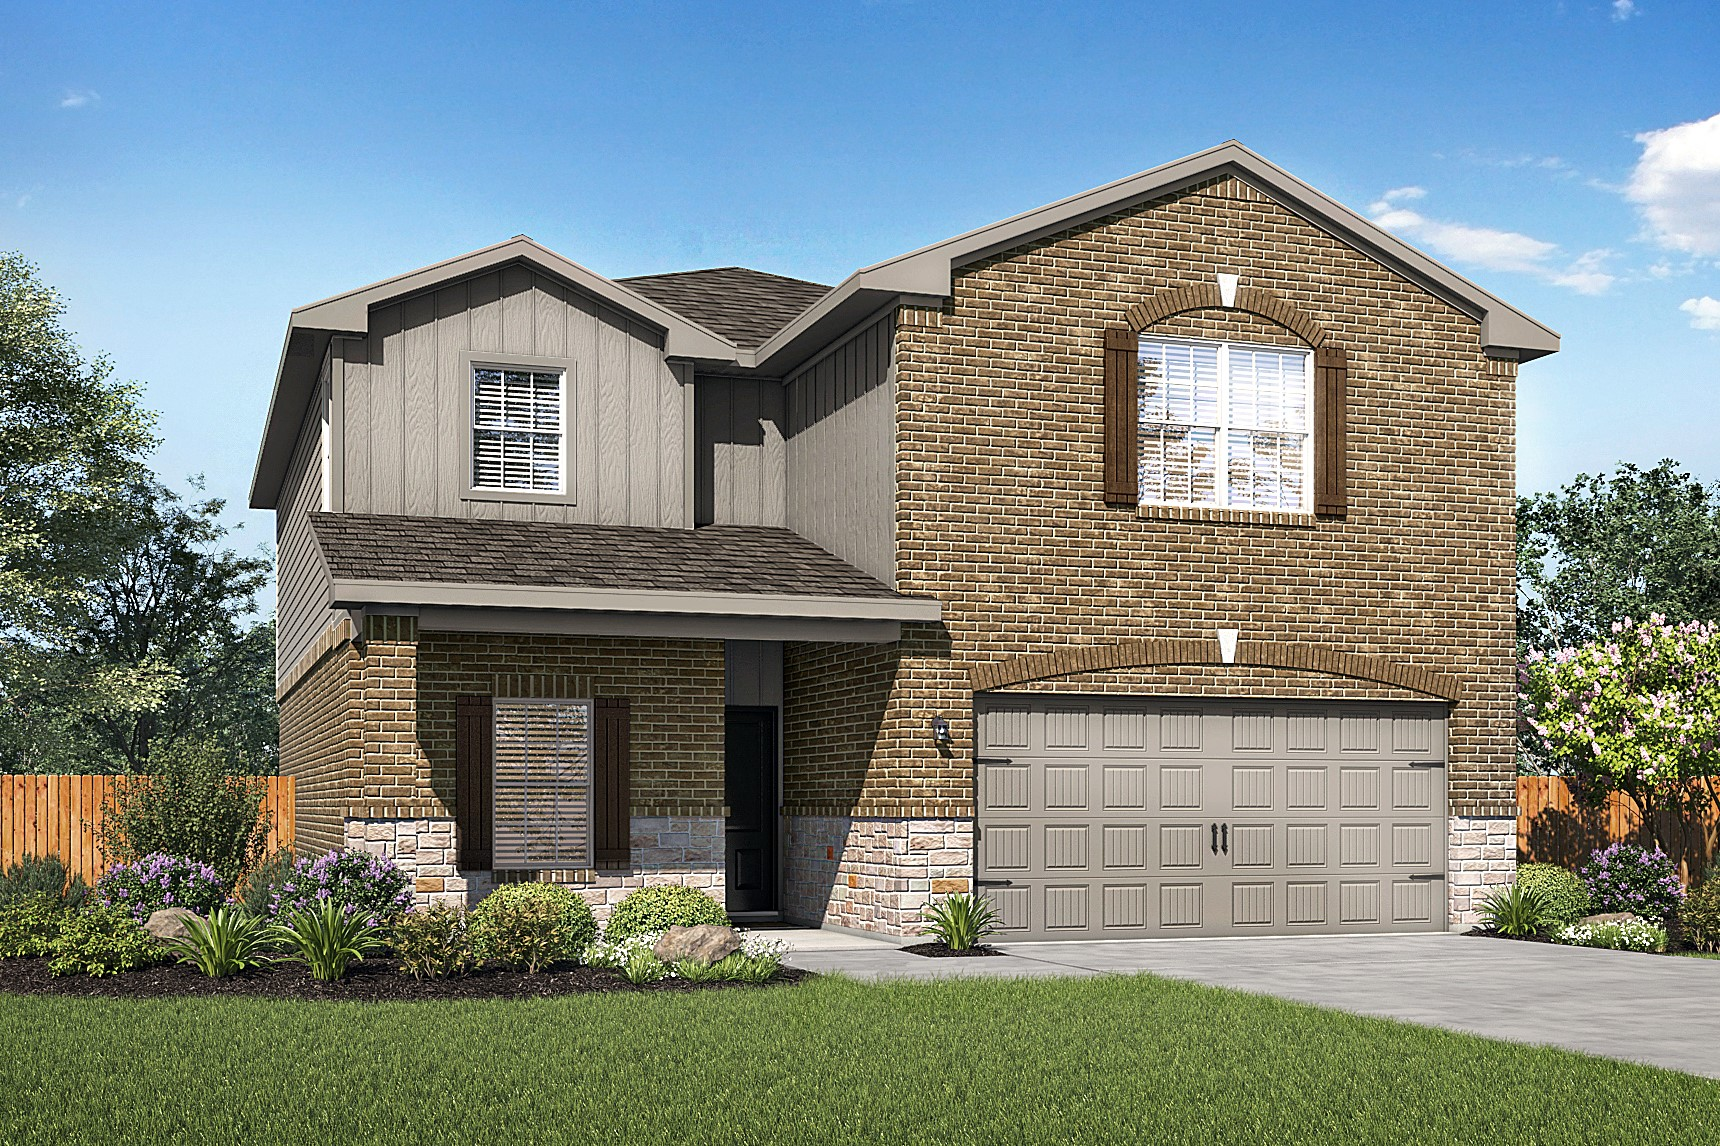 The Victoria plan is now available at Hightop Ridge in Converse, Texas.